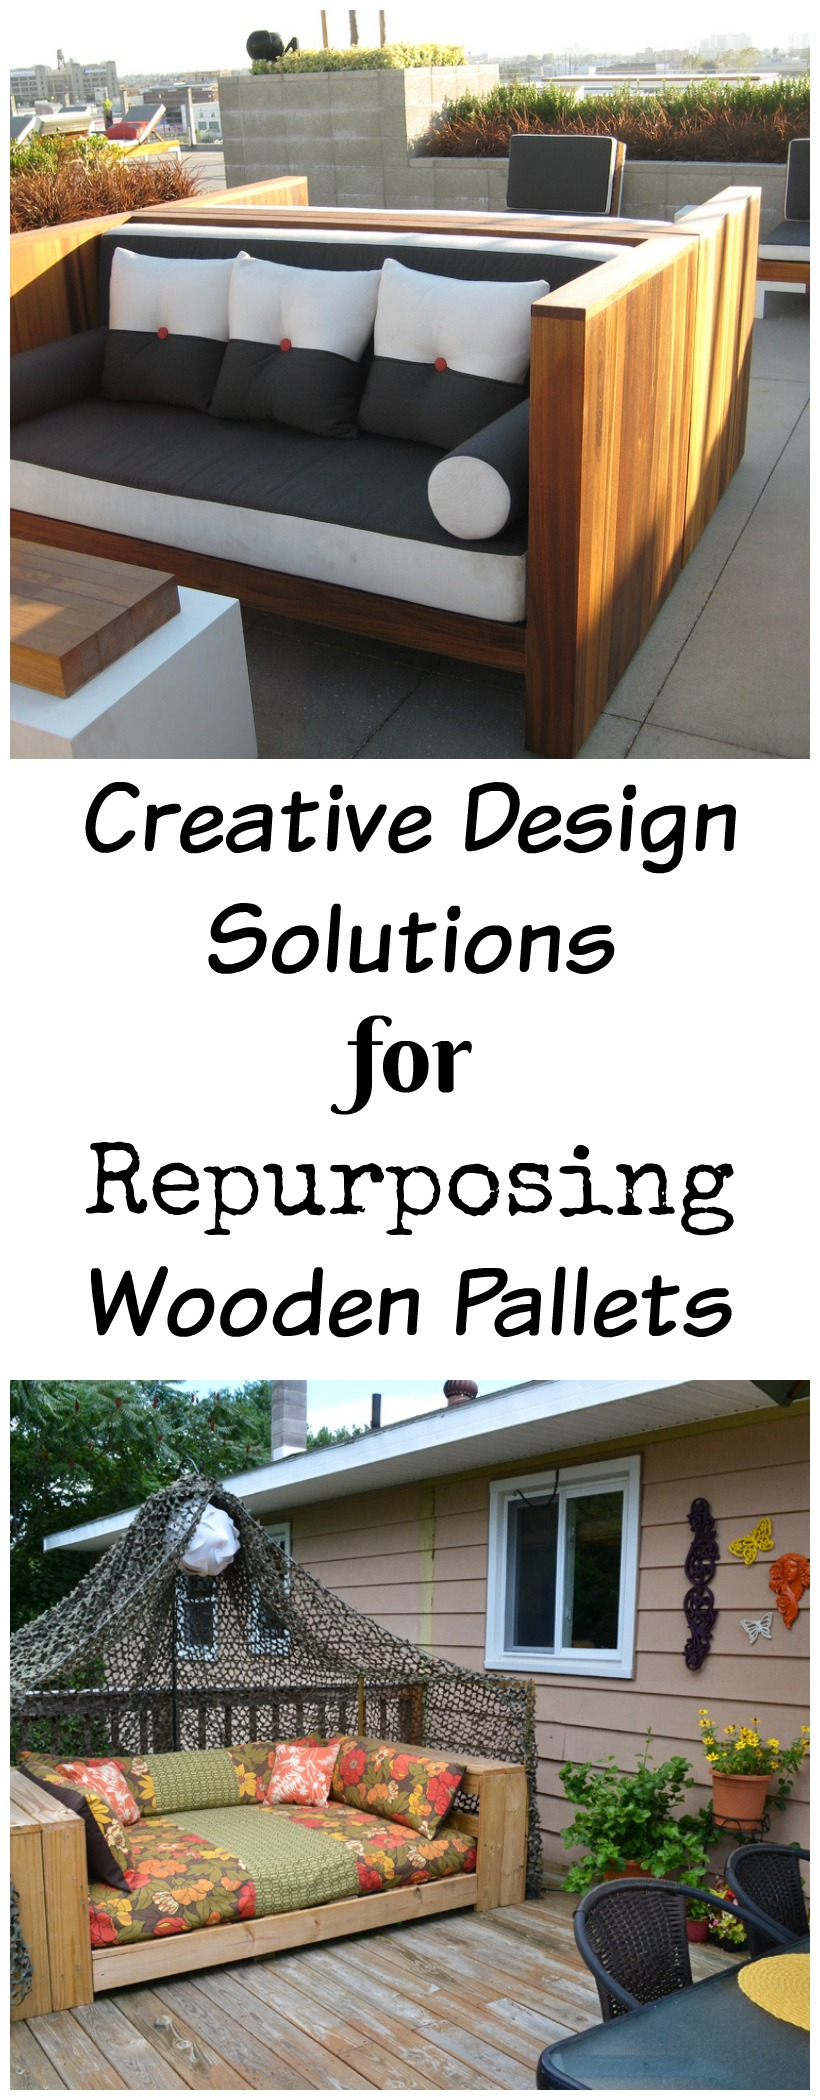 Creative Design Solutions for Repurposing Wooden Pallets chemistrycachet.com